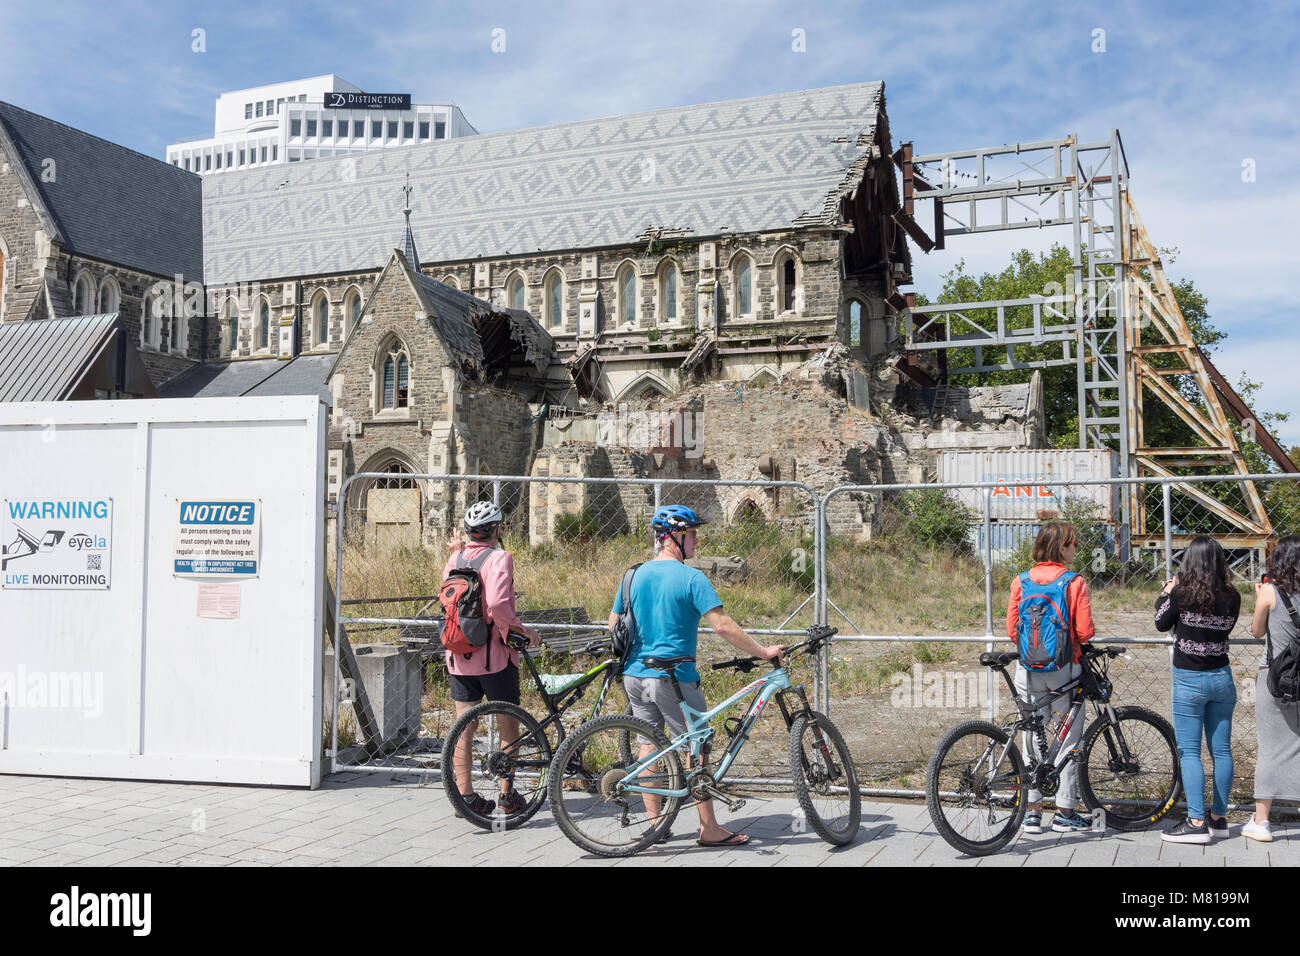 Tourists viewing cathedral damage from 2011 earthquake, Cathedral Square, Christchurch, Canterbury, New Zealand - Stock Image